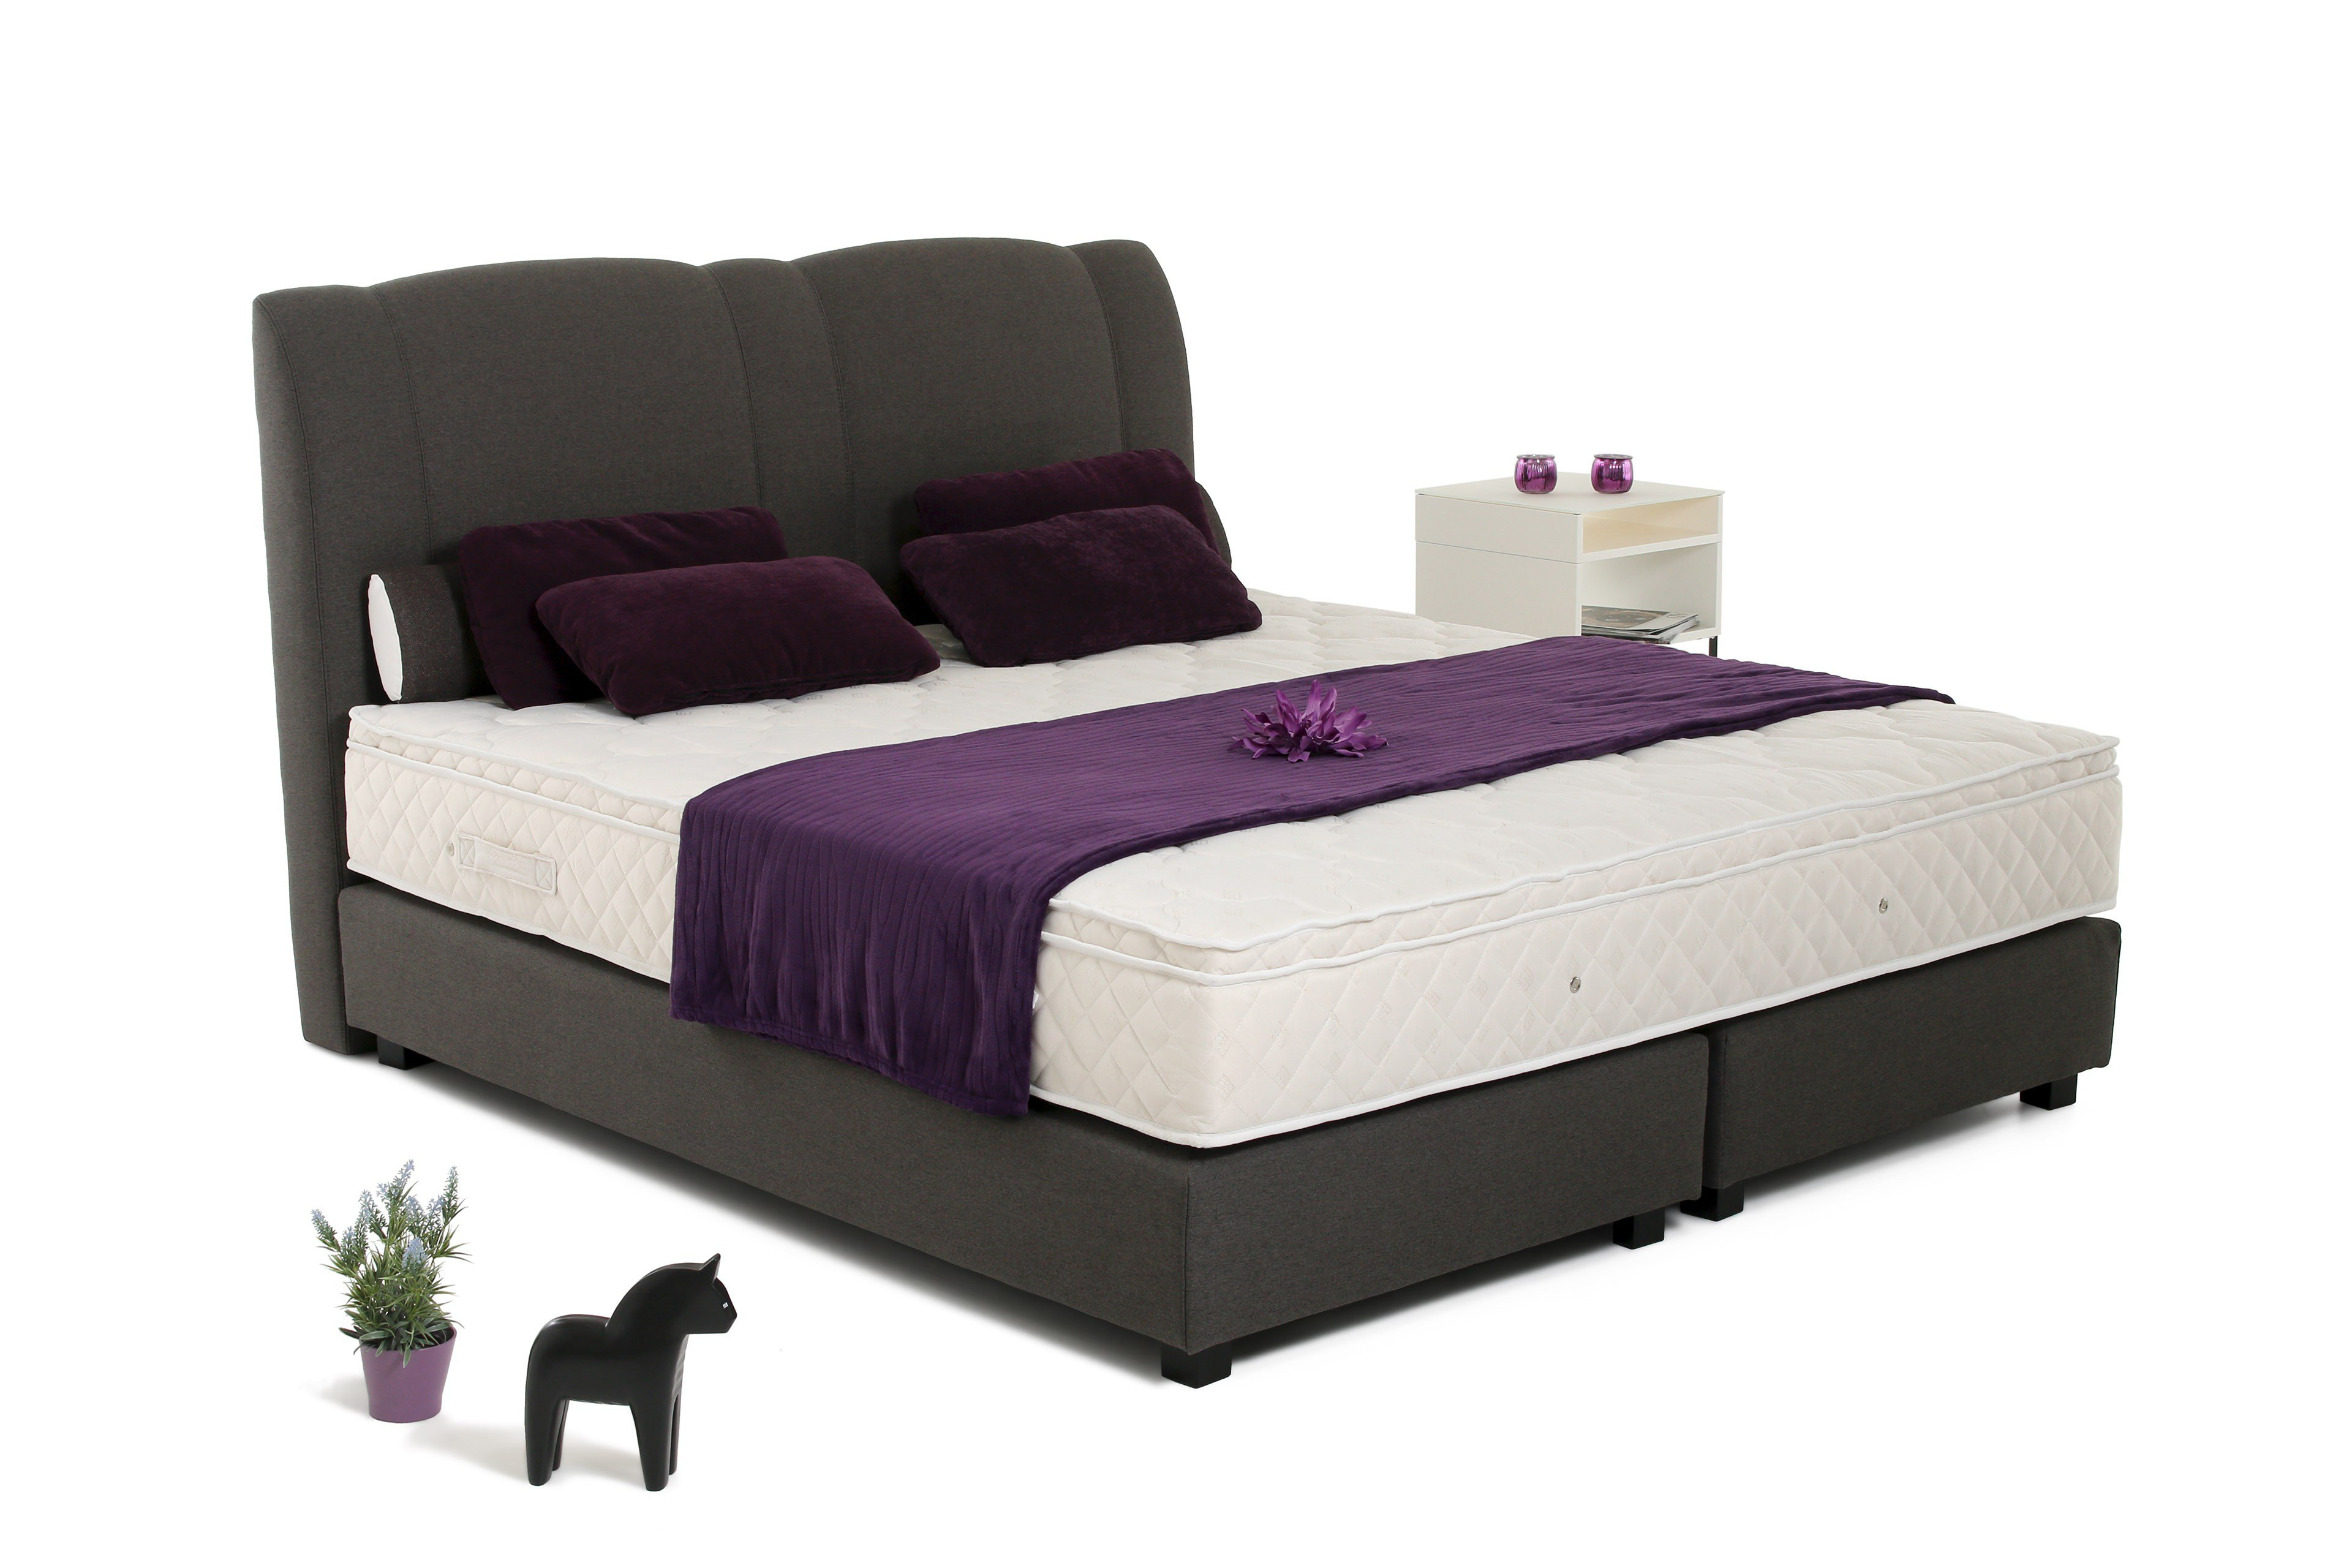 skandinavische m bel boxspringbett majken im zeitlosen dunkelgrau m bel letz ihr online shop. Black Bedroom Furniture Sets. Home Design Ideas